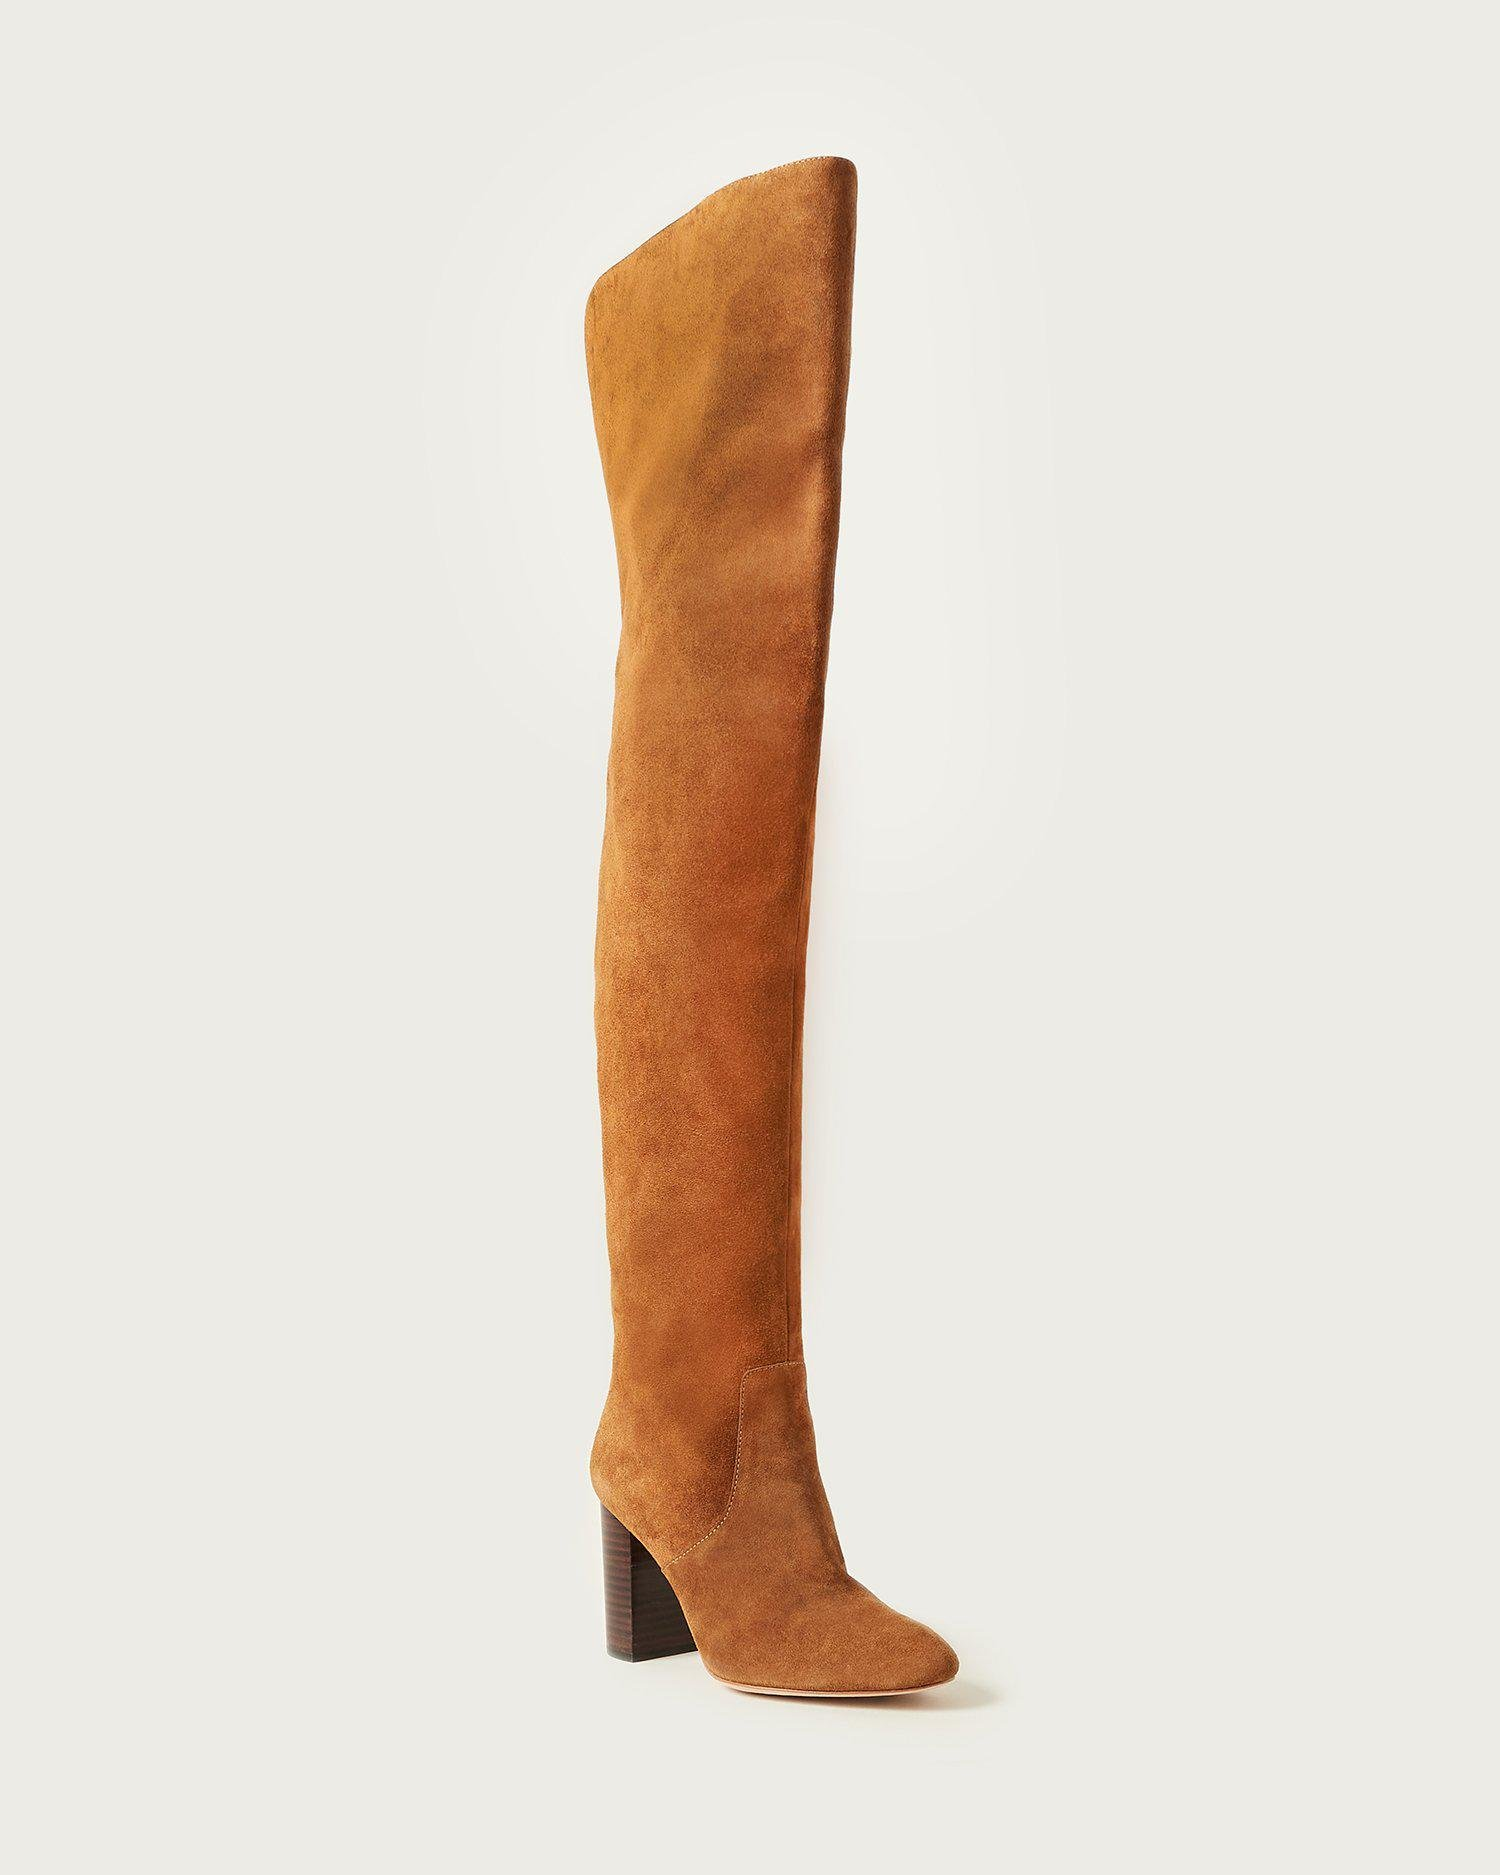 Gianna Cacao Over-The-Knee Boot